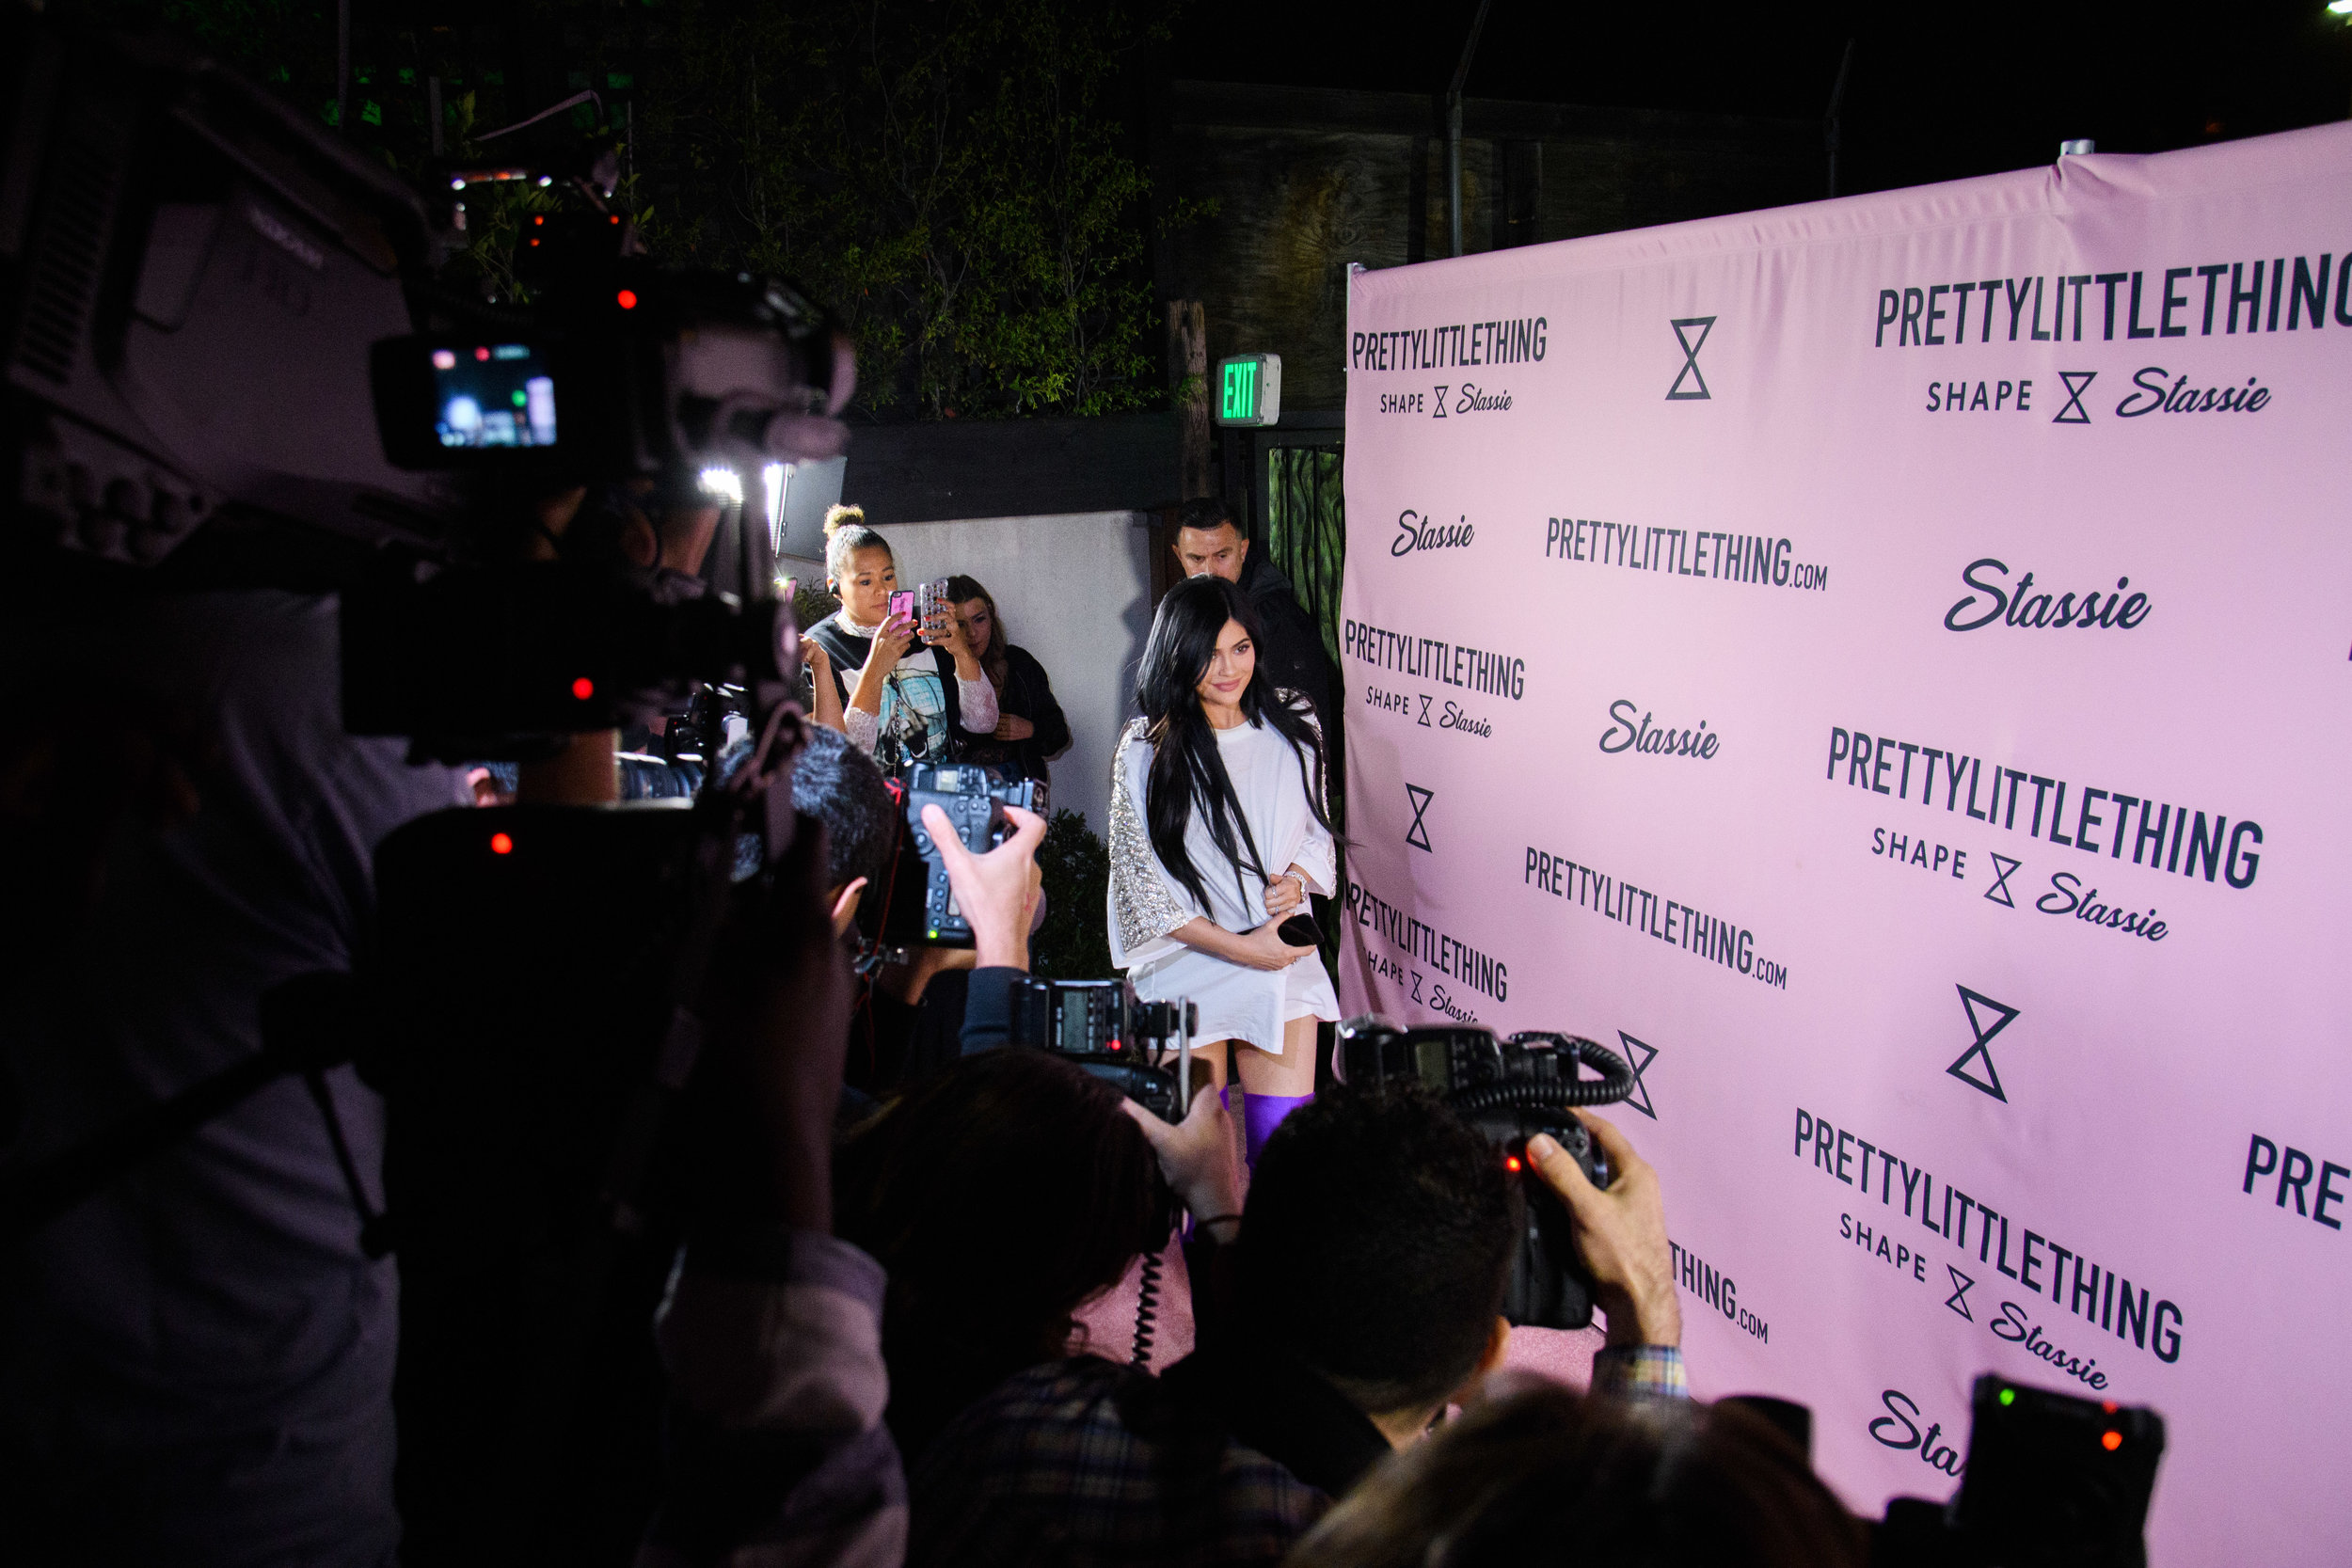 PrettyLittleThing New PLT Shape Collection with Stassie Celebrity Launch Party Kylie Jenner arriving at the party.jpg